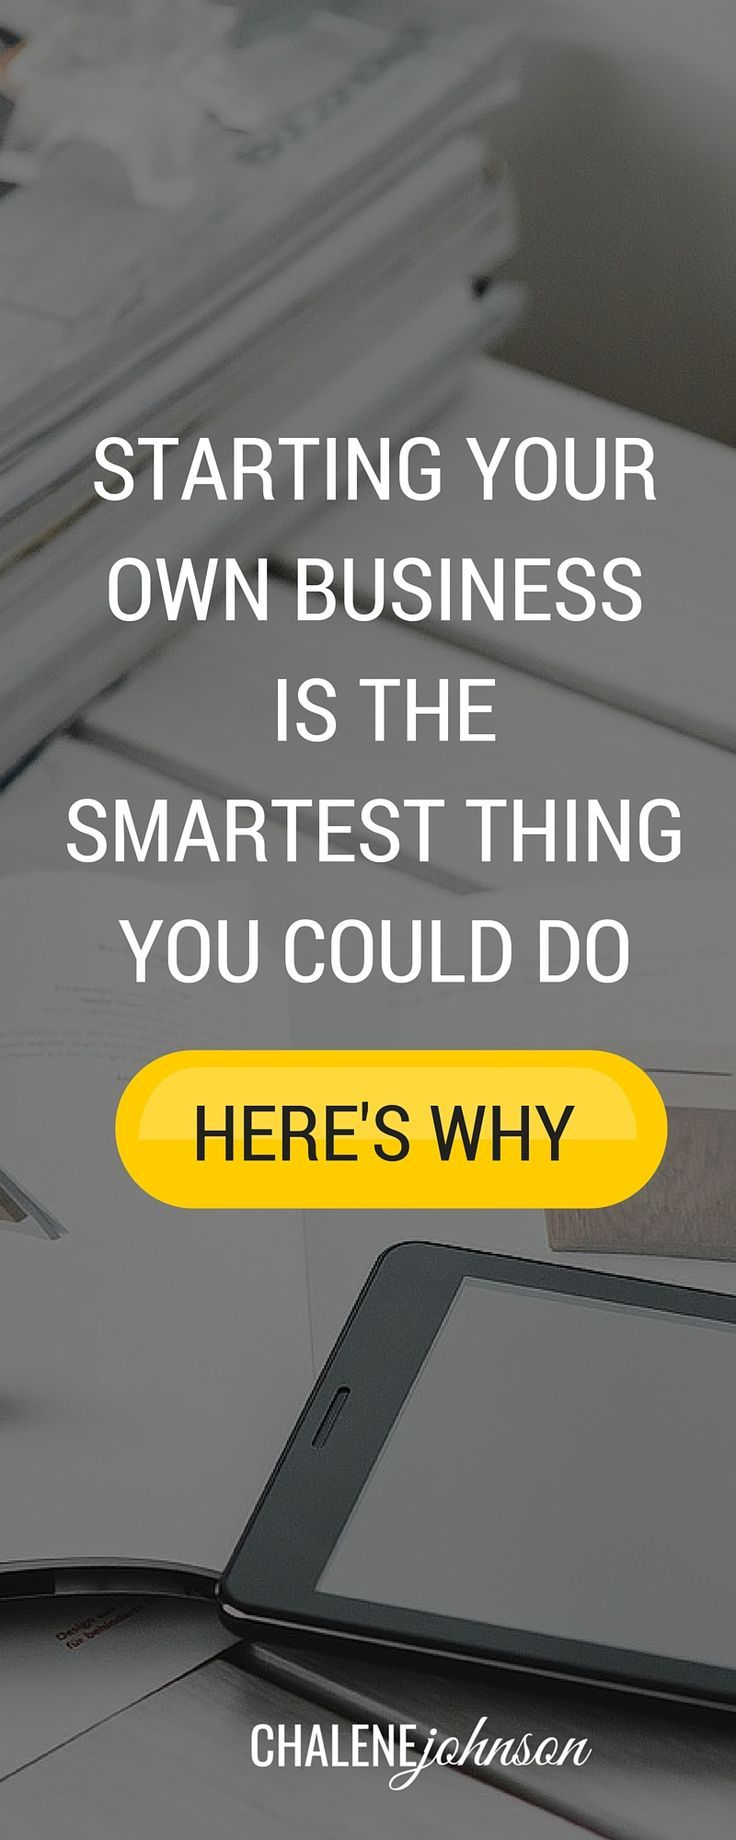 opening your own business How to start your own business from michigan state university this specialization is a guide to creating your own business we will cover a progression of topics necessary for successful business creation including: mindset, ideation, planning, .